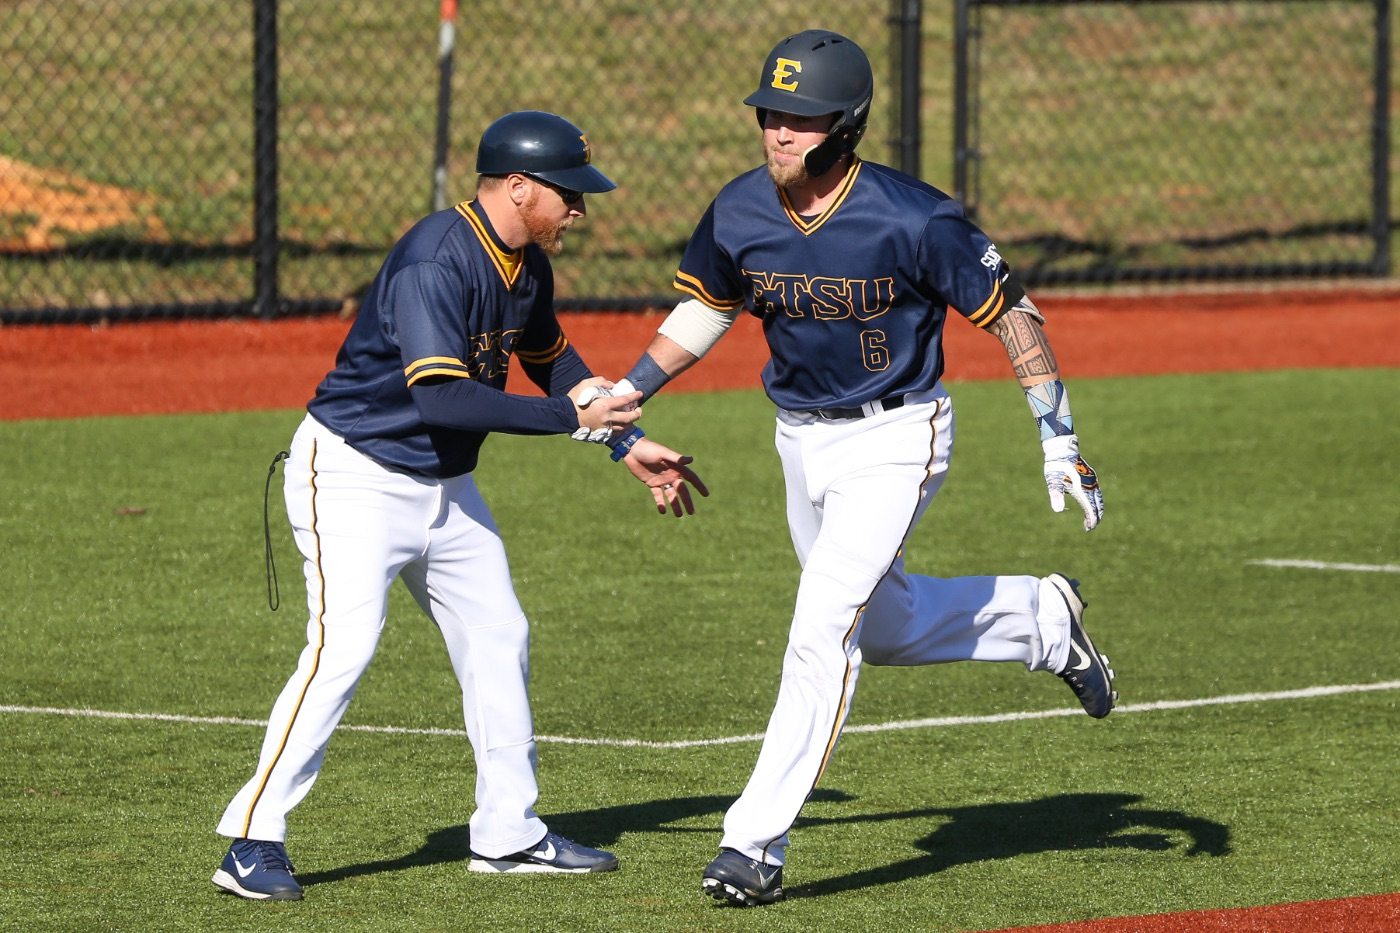 Bucs win series over Tennessee with 9-6 midweek win